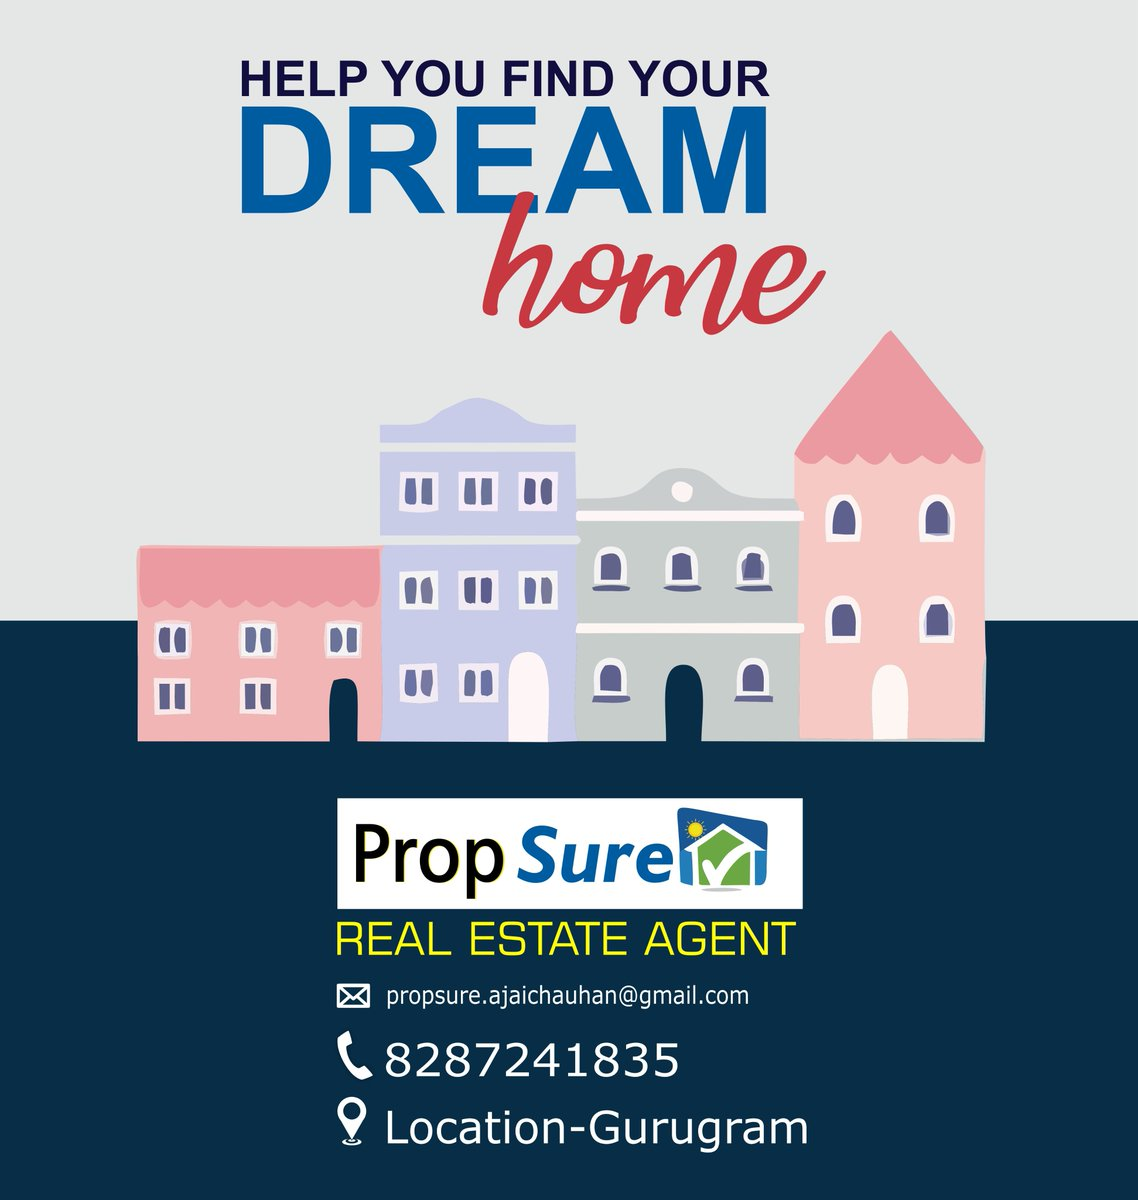 Help You Find Your Dream Home.  https://t.co/HrpUrW09rC @propsure1  #realestate #realtor #realestateagent #home #property #forsale #investment #realtorlife #househunting #luxury #dreamhome #newhome #interiordesign #luxuryrealestate #house #homesweethome #architecture #luxuryhomes https://t.co/UDOMRyWbsr